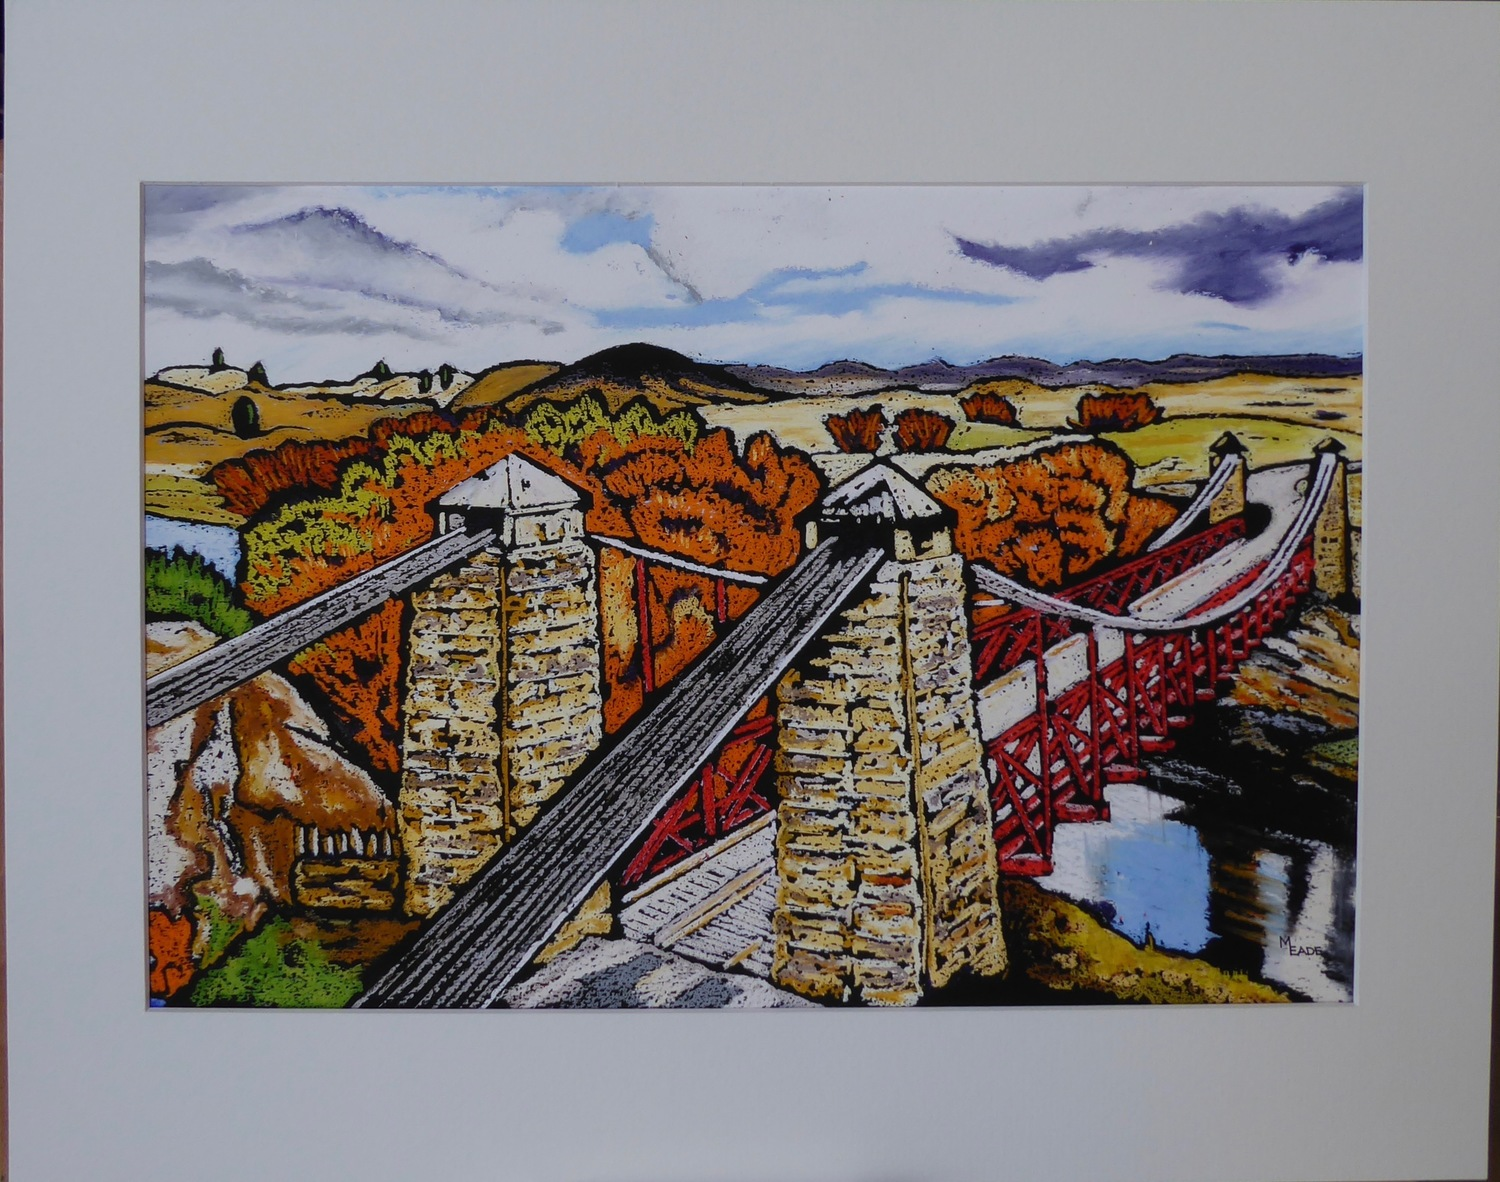 Print - Large - Ophir Bridge, Central Otago